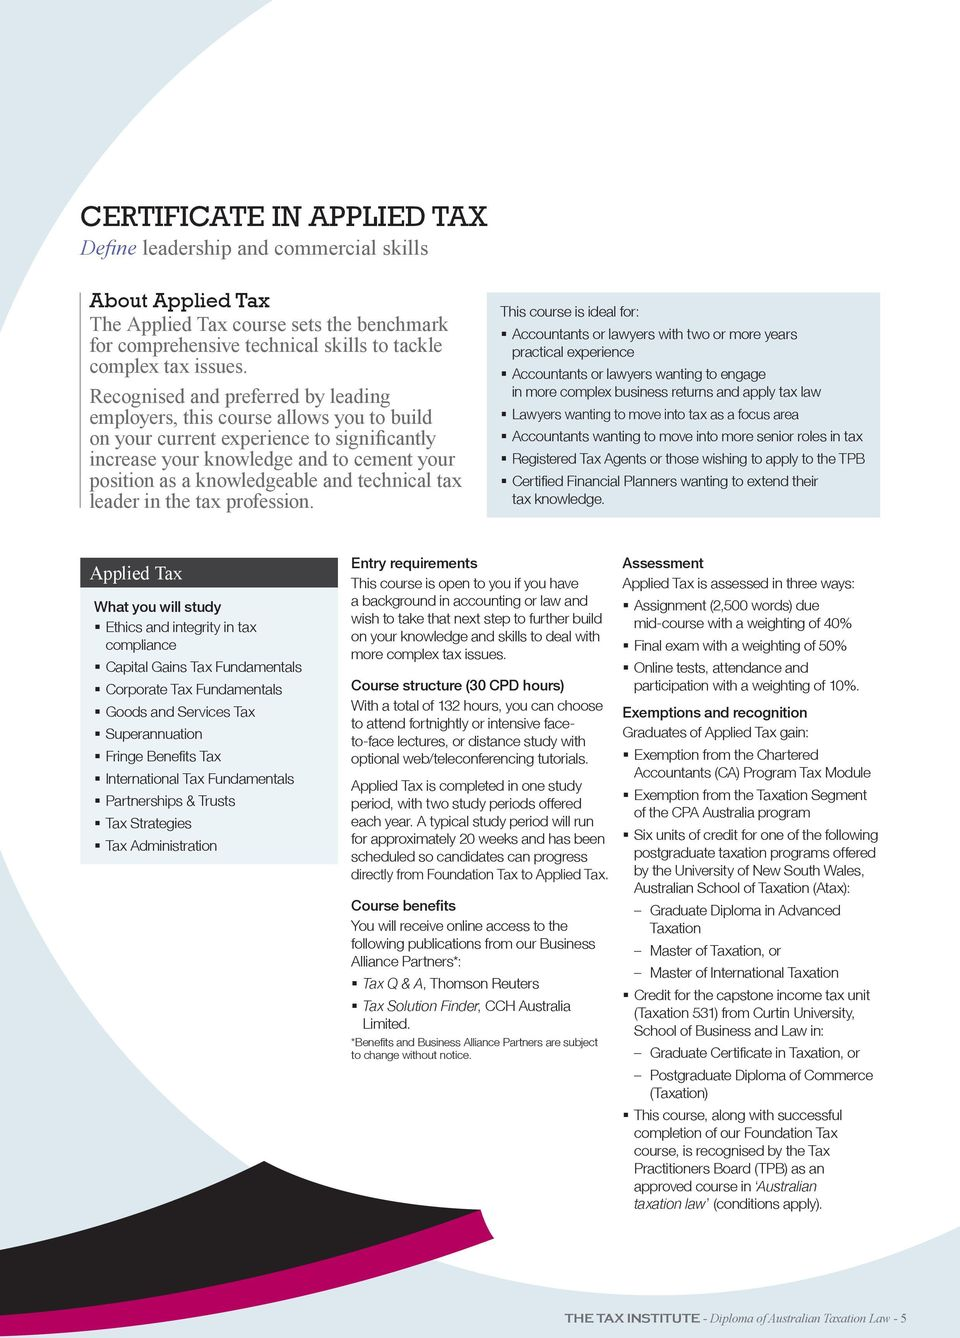 technical tax leader in the tax profession.